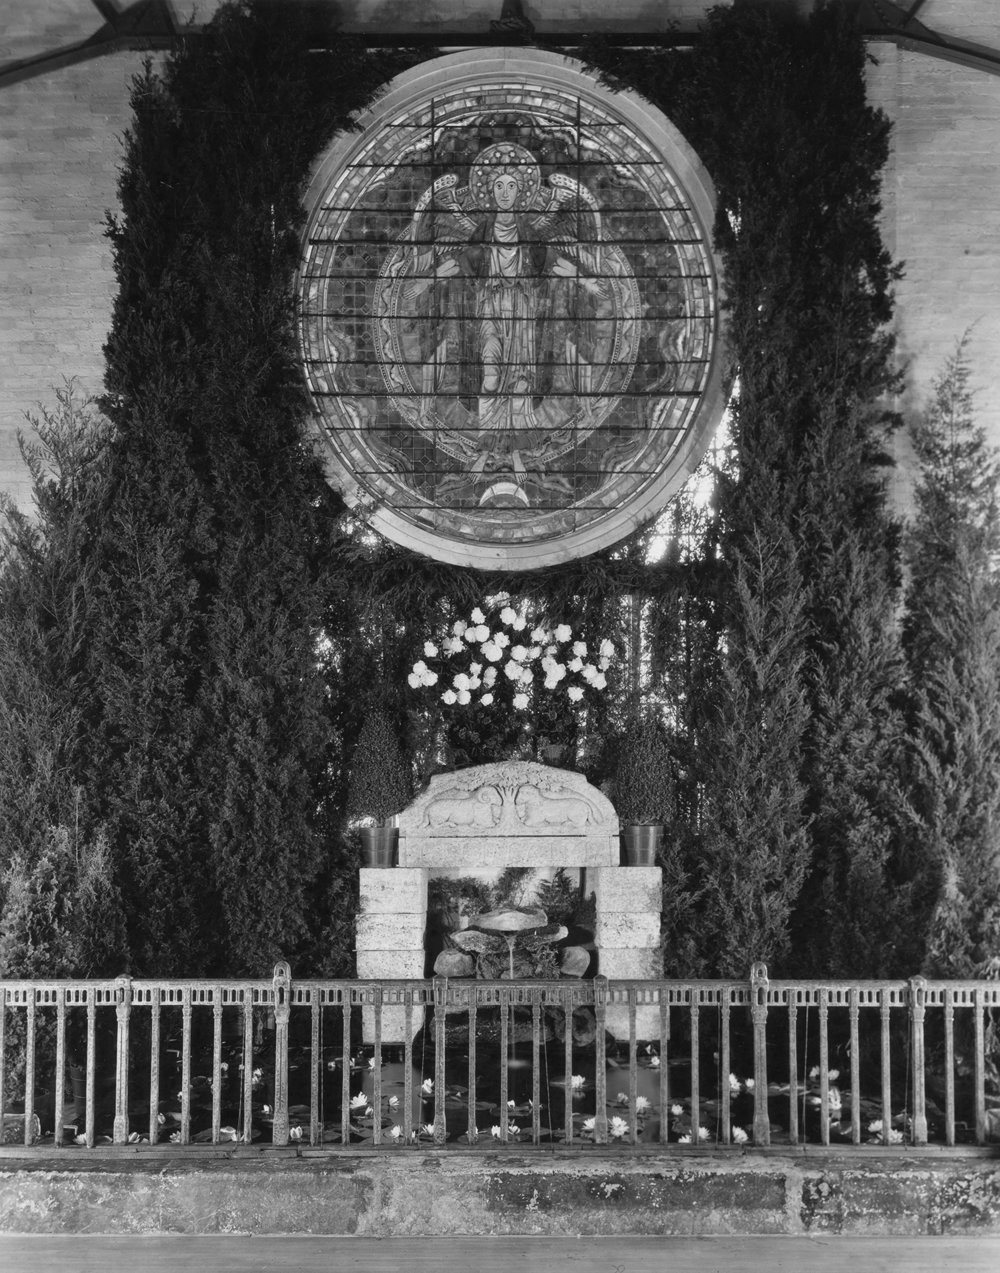 Figure 17: The end of the Assembly Hall, opposite the stage. Decorations included a stained glass window depicting the Woman Clothed with the Sun, a Monel metal railing, and the lintel of Glencairn's front door.